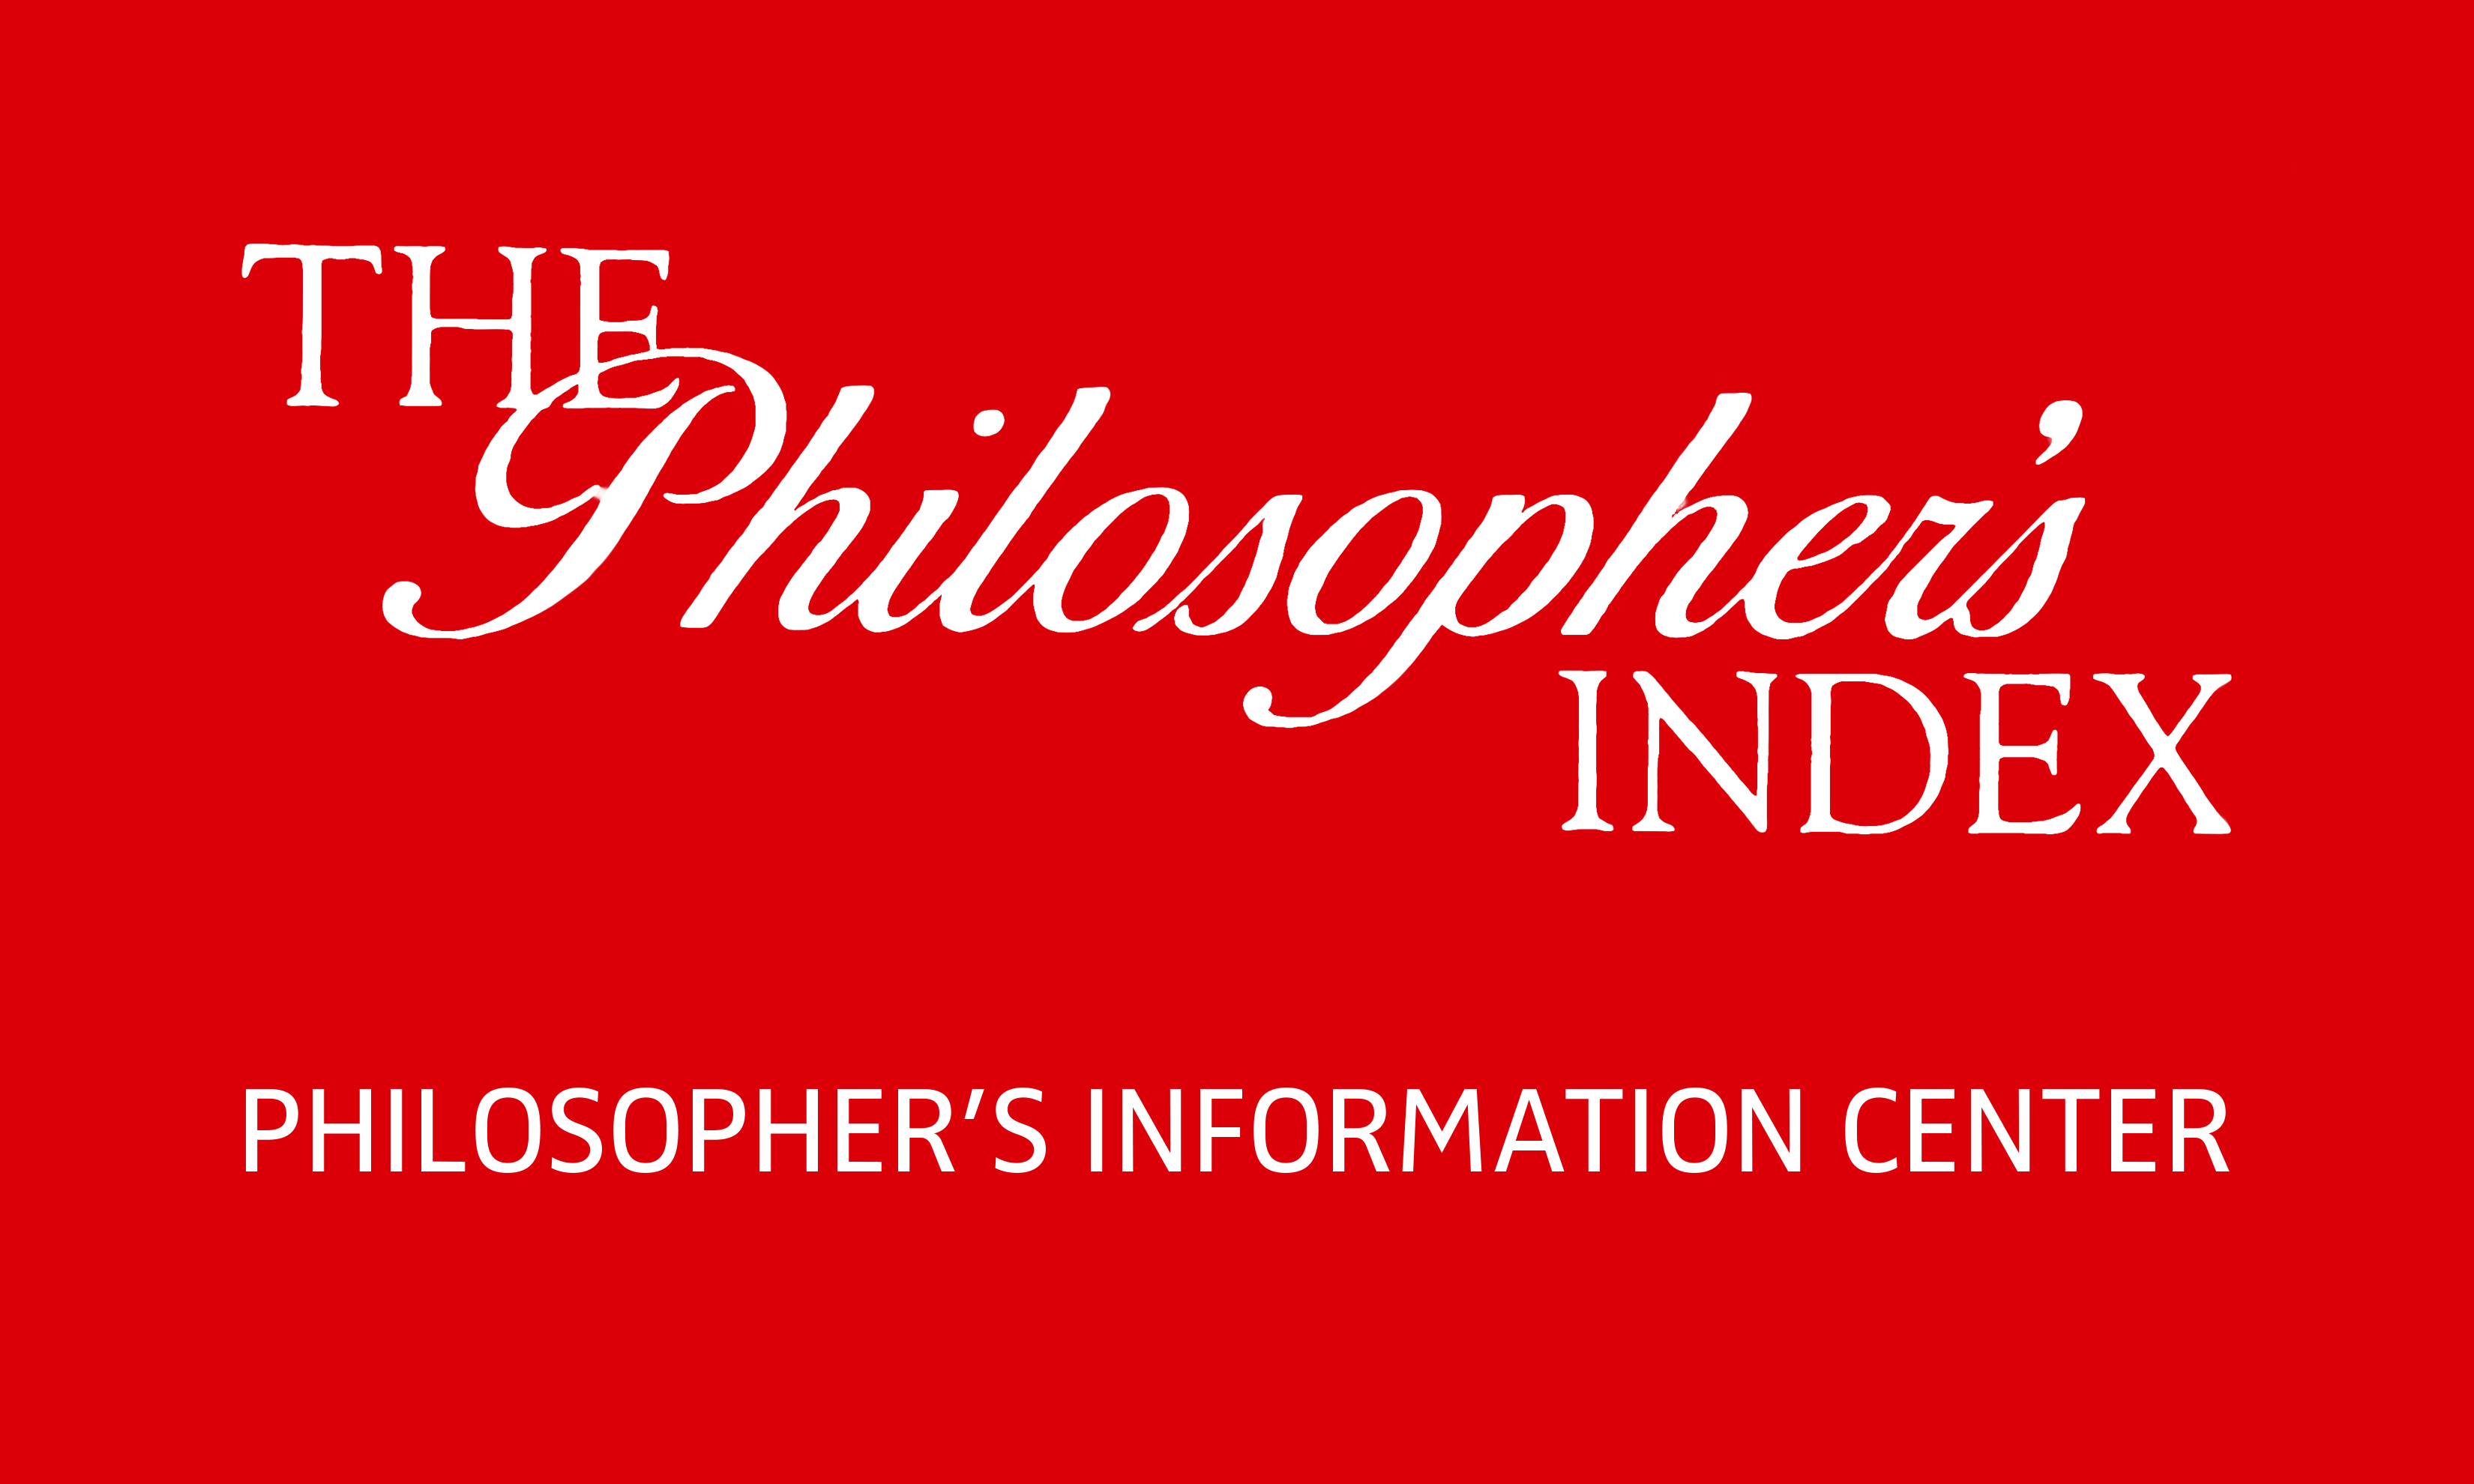 The Philosopher's Index